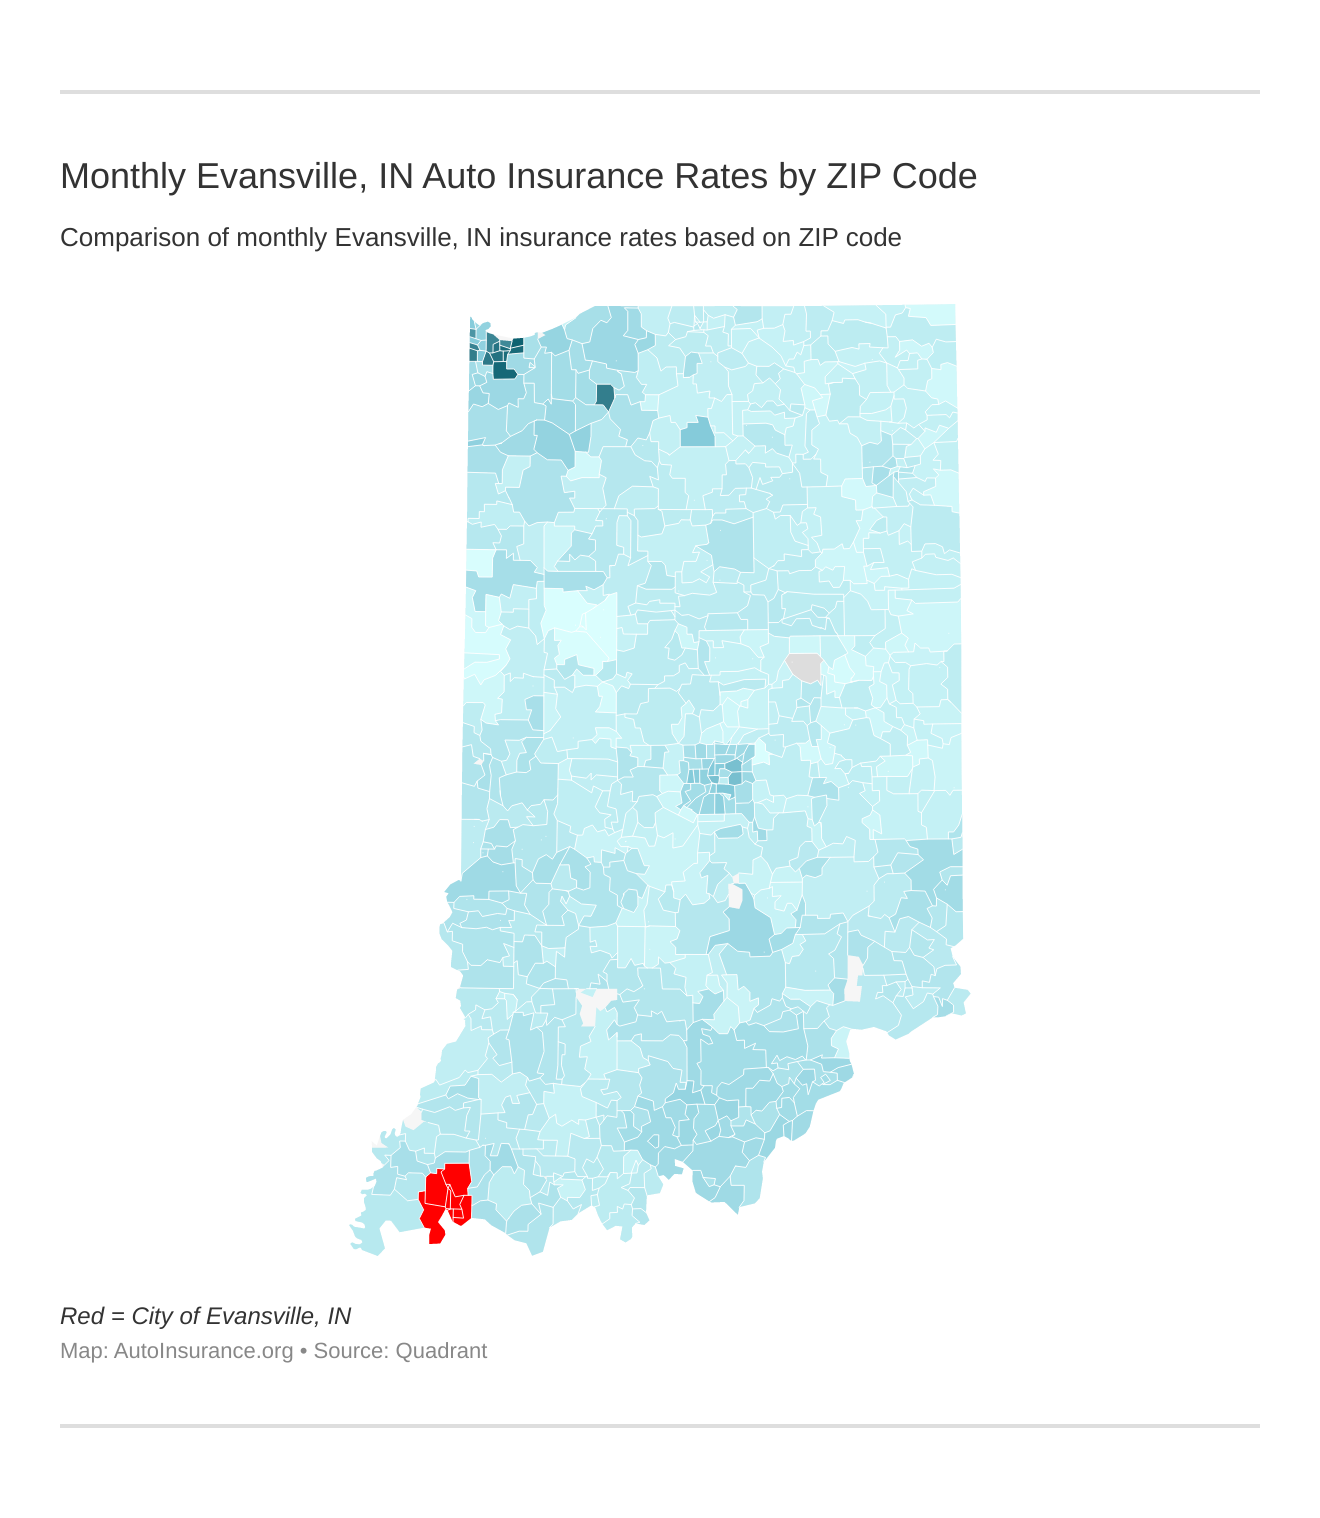 Monthly Evansville, IN Auto Insurance Rates by ZIP Code